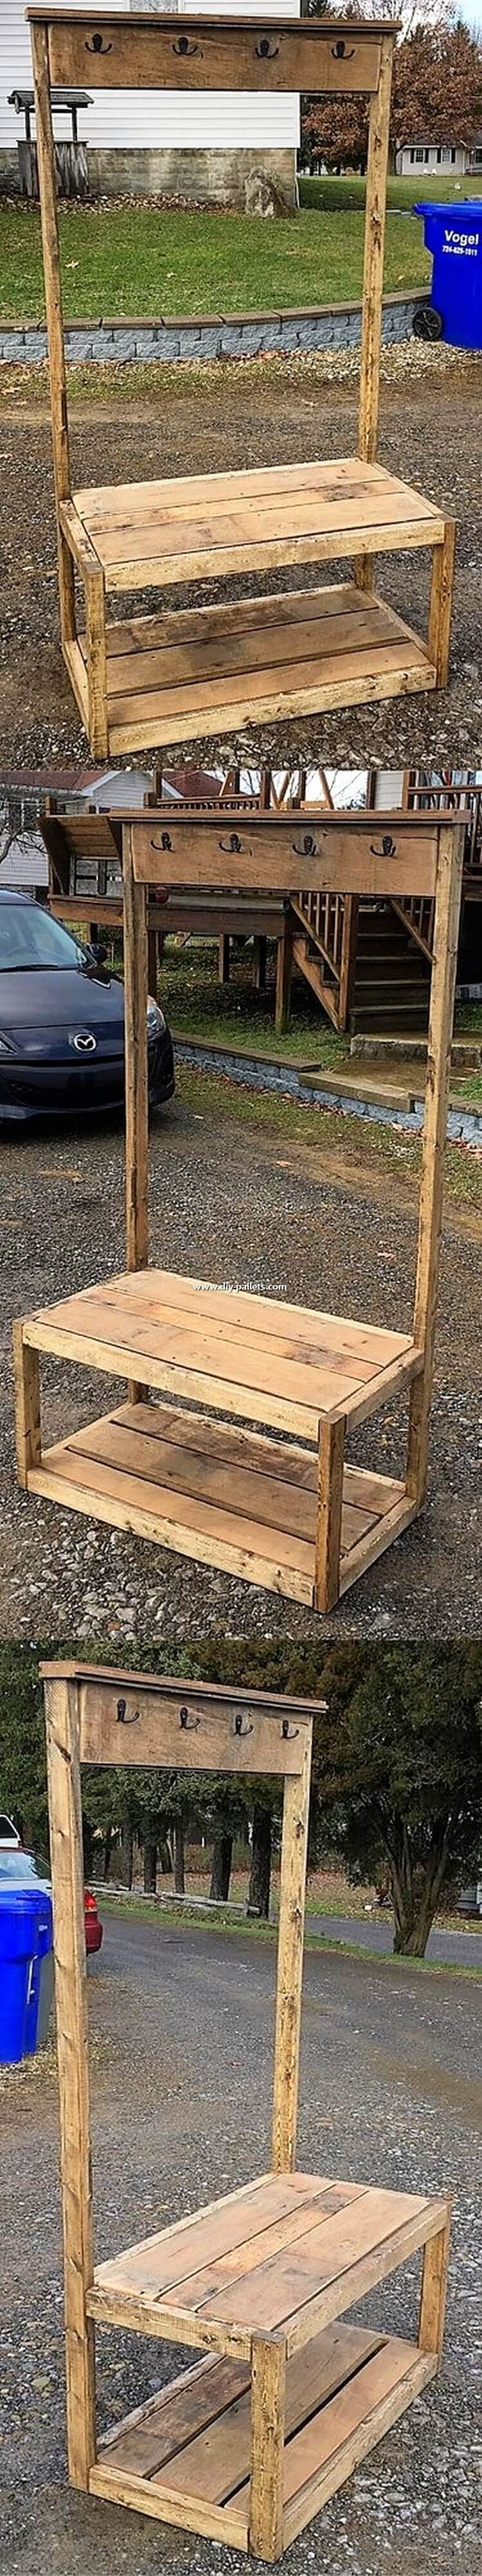 Pallet Coat Rack with Seat